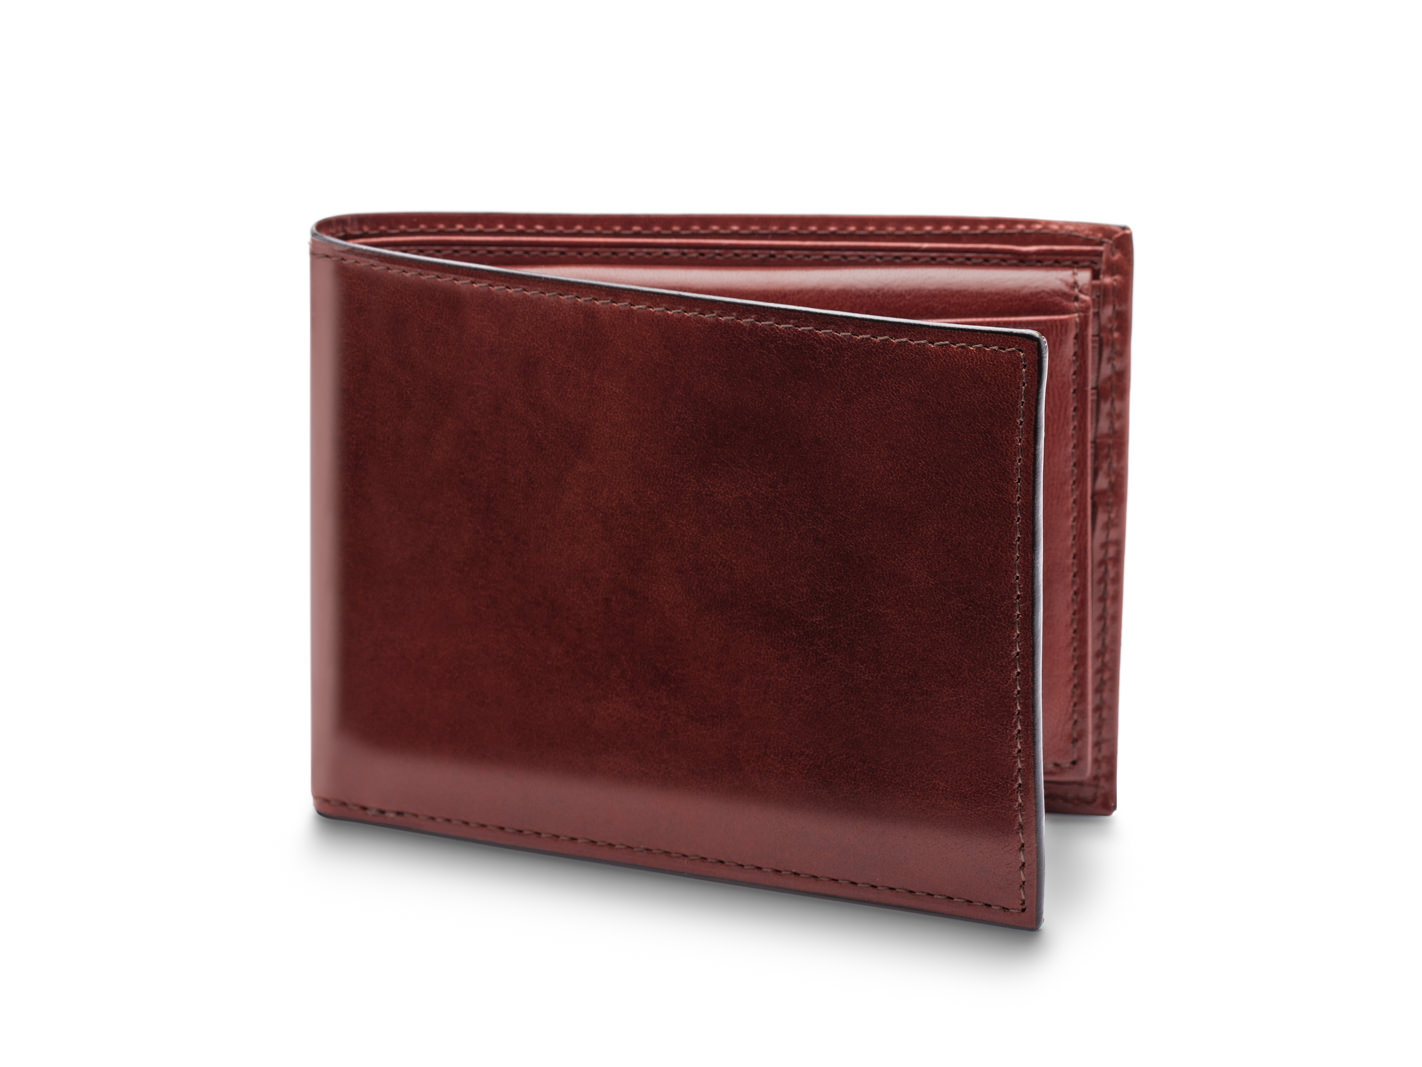 Credit Wallet with I.D. Passcase - 58 Dark Brown